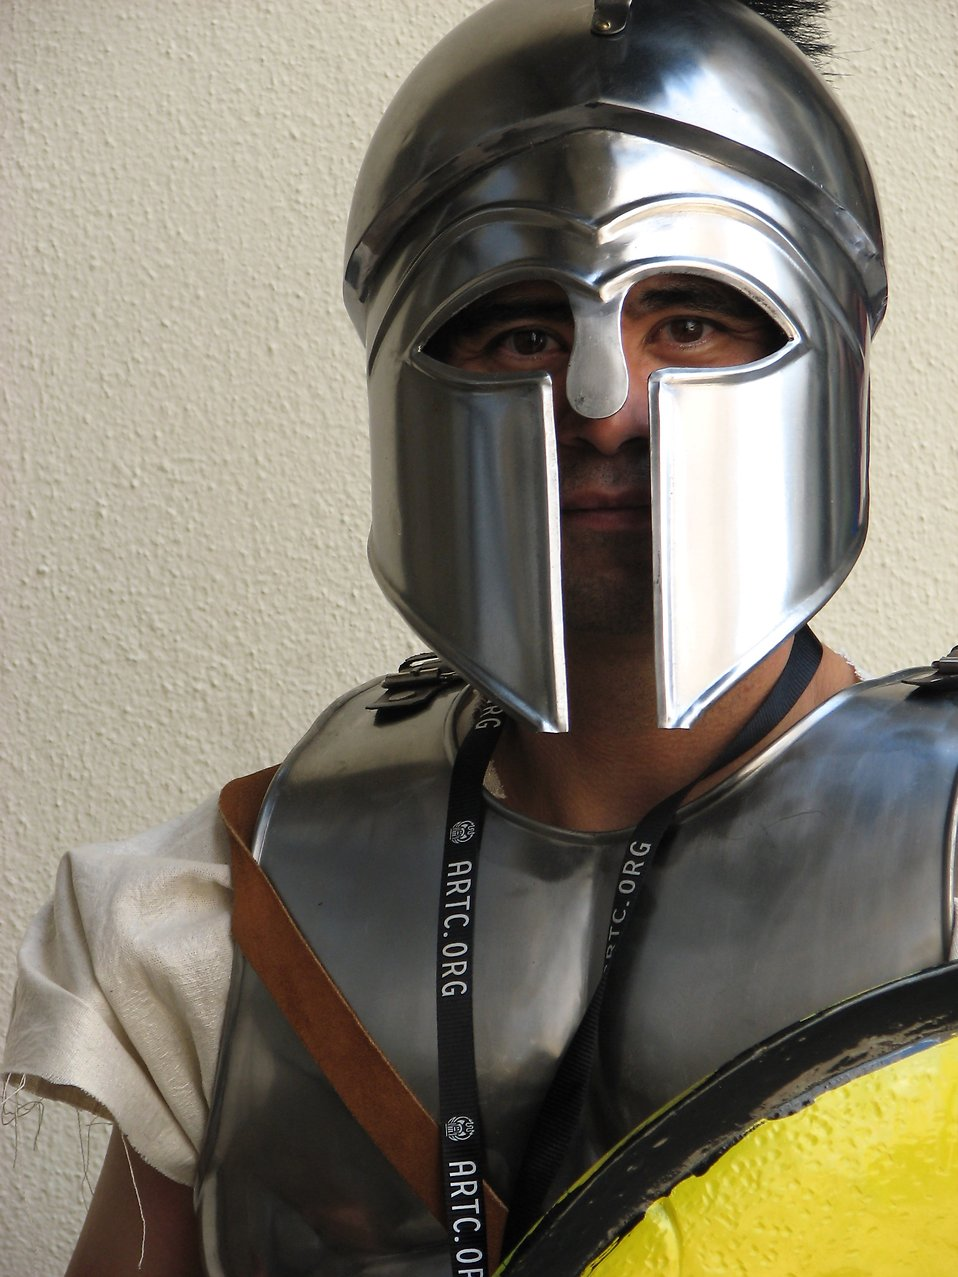 Closeup of man in Spartan armor at Dragoncon 2008 : Free Stock Photo